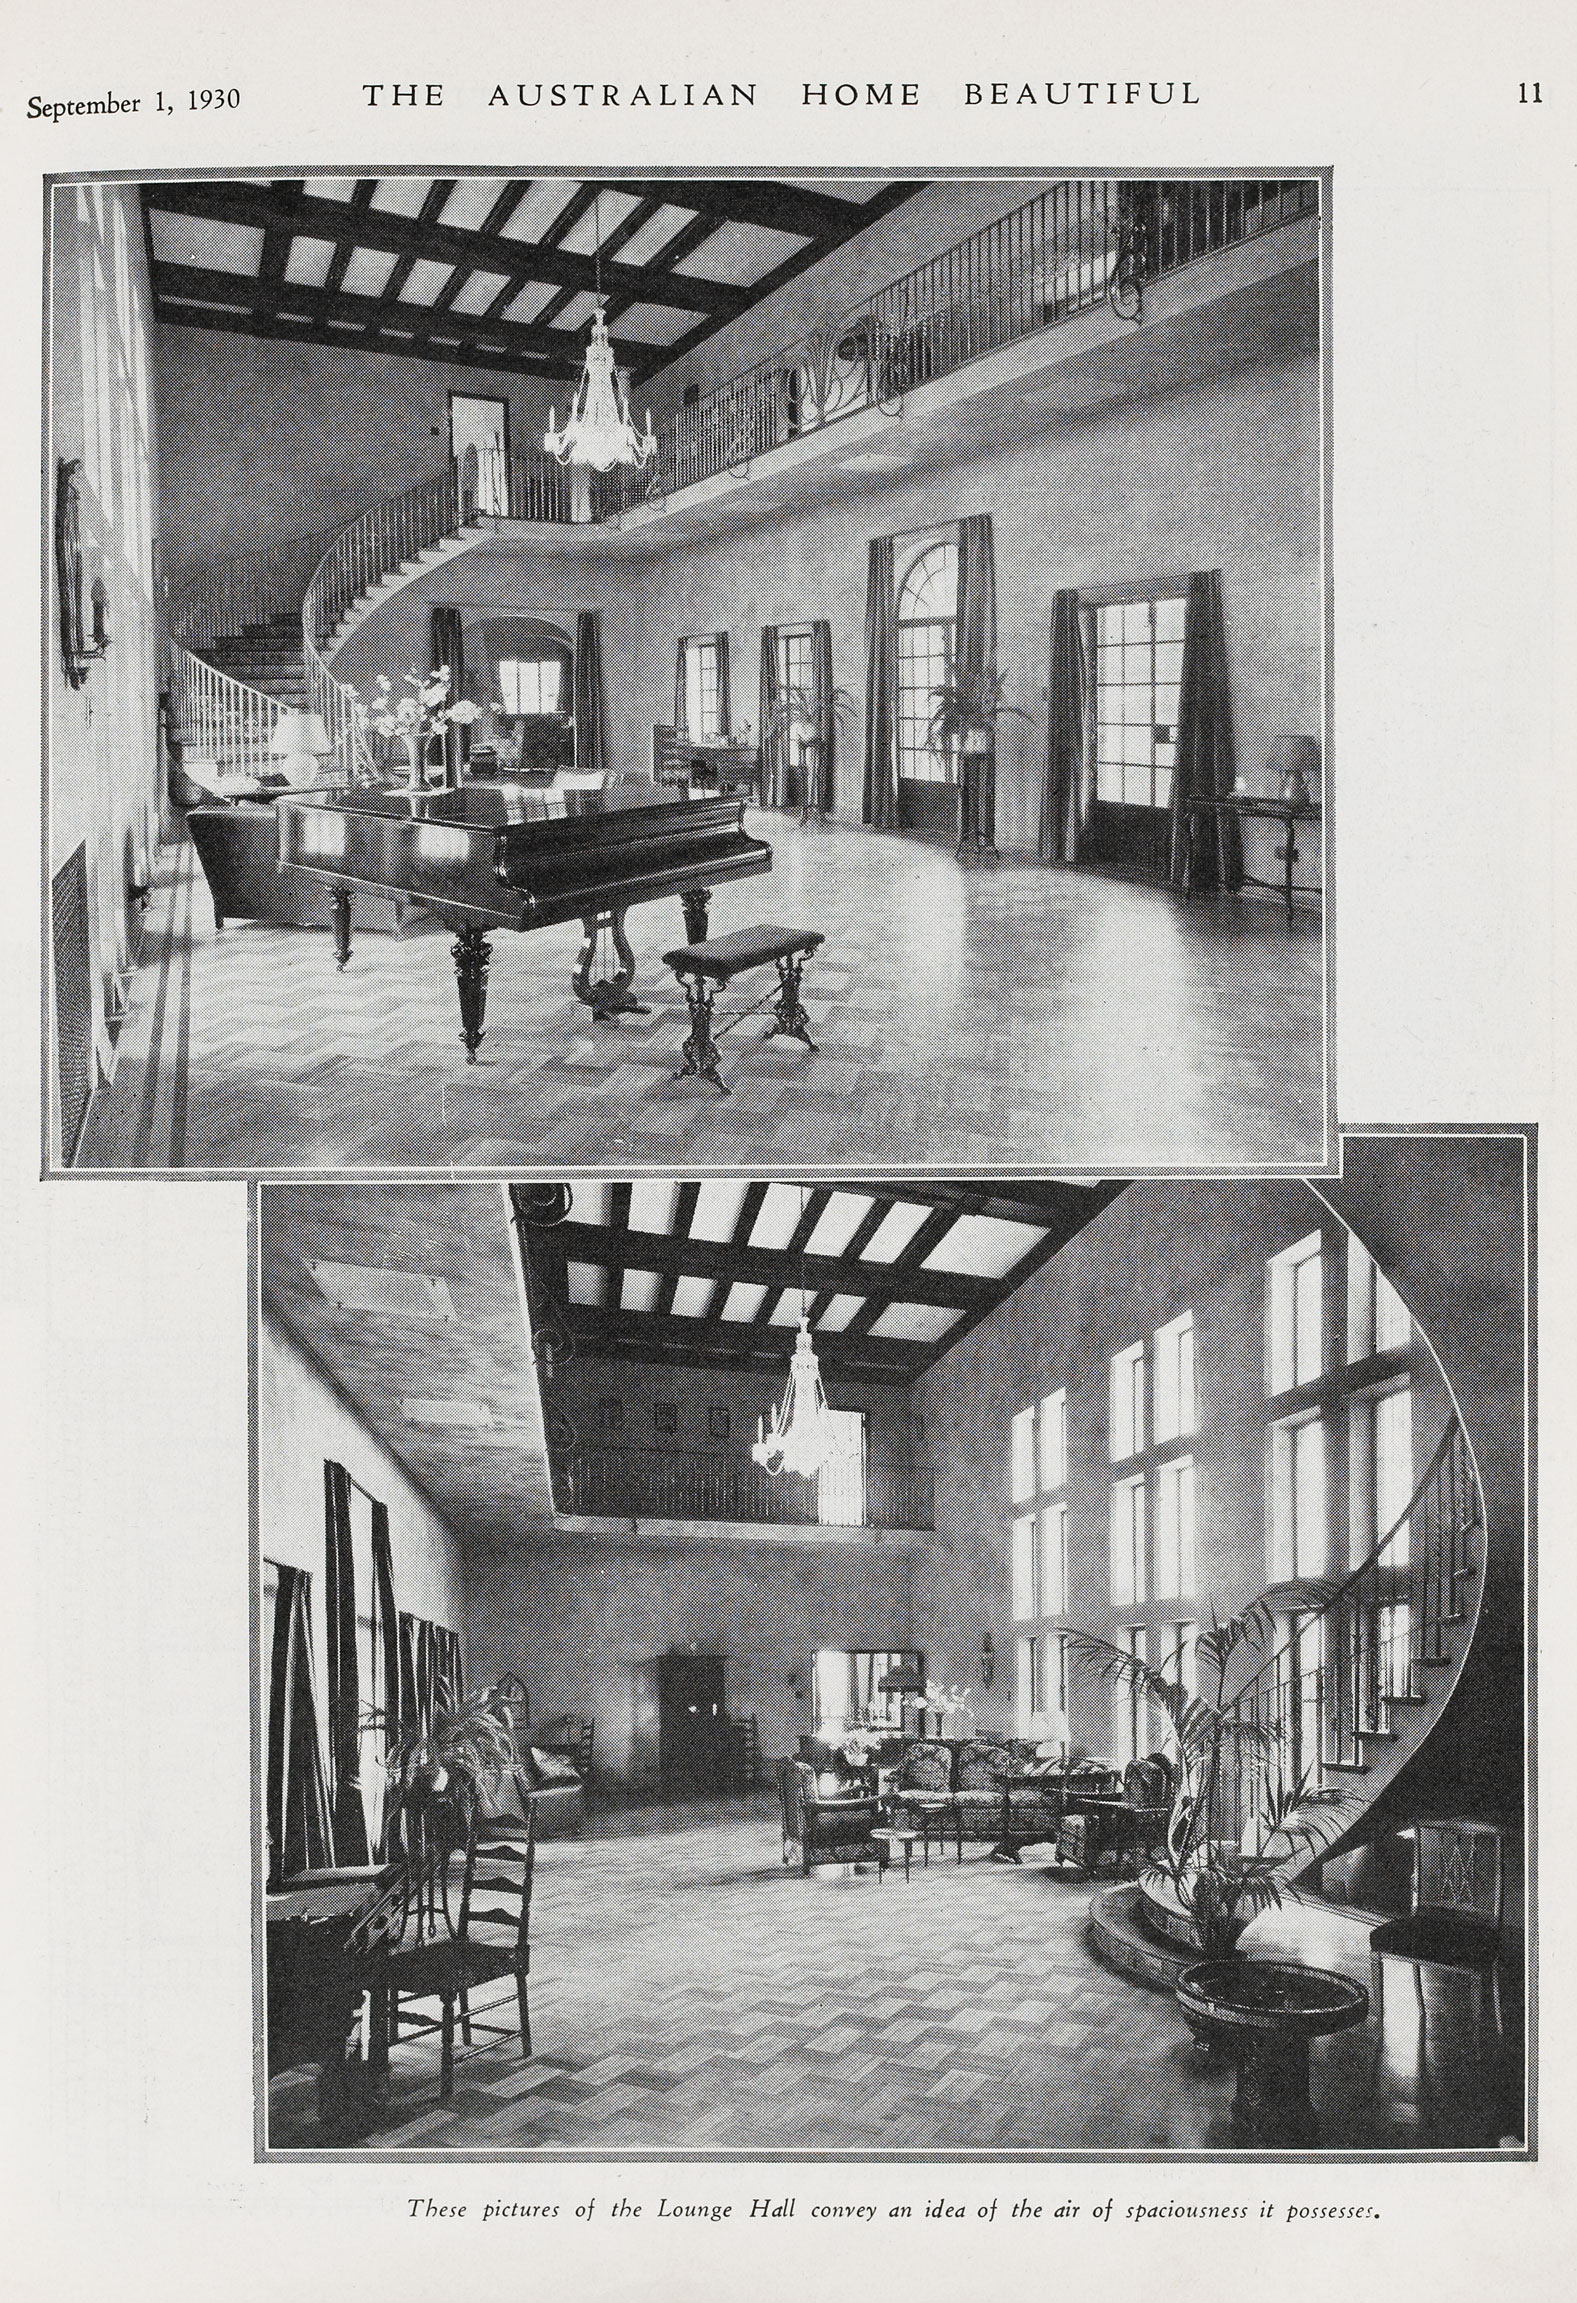 Old pictures of the Amberley lounge hall from 1930 Australian Homes Beautiful magazine.